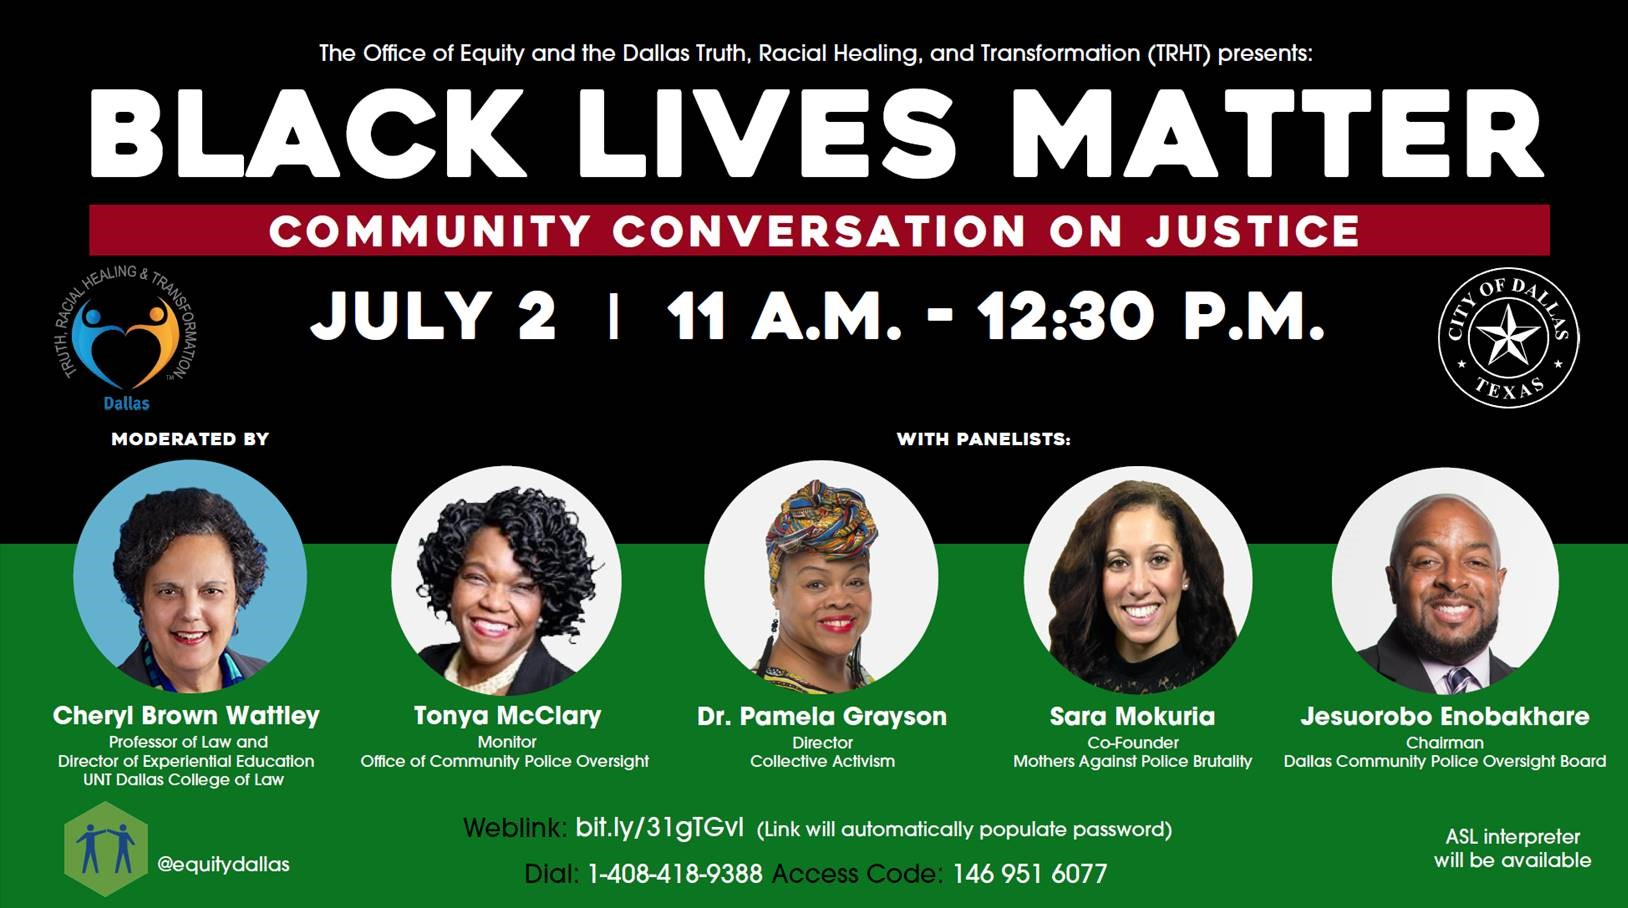 Black Lives Matter: Community Conversation on Justice